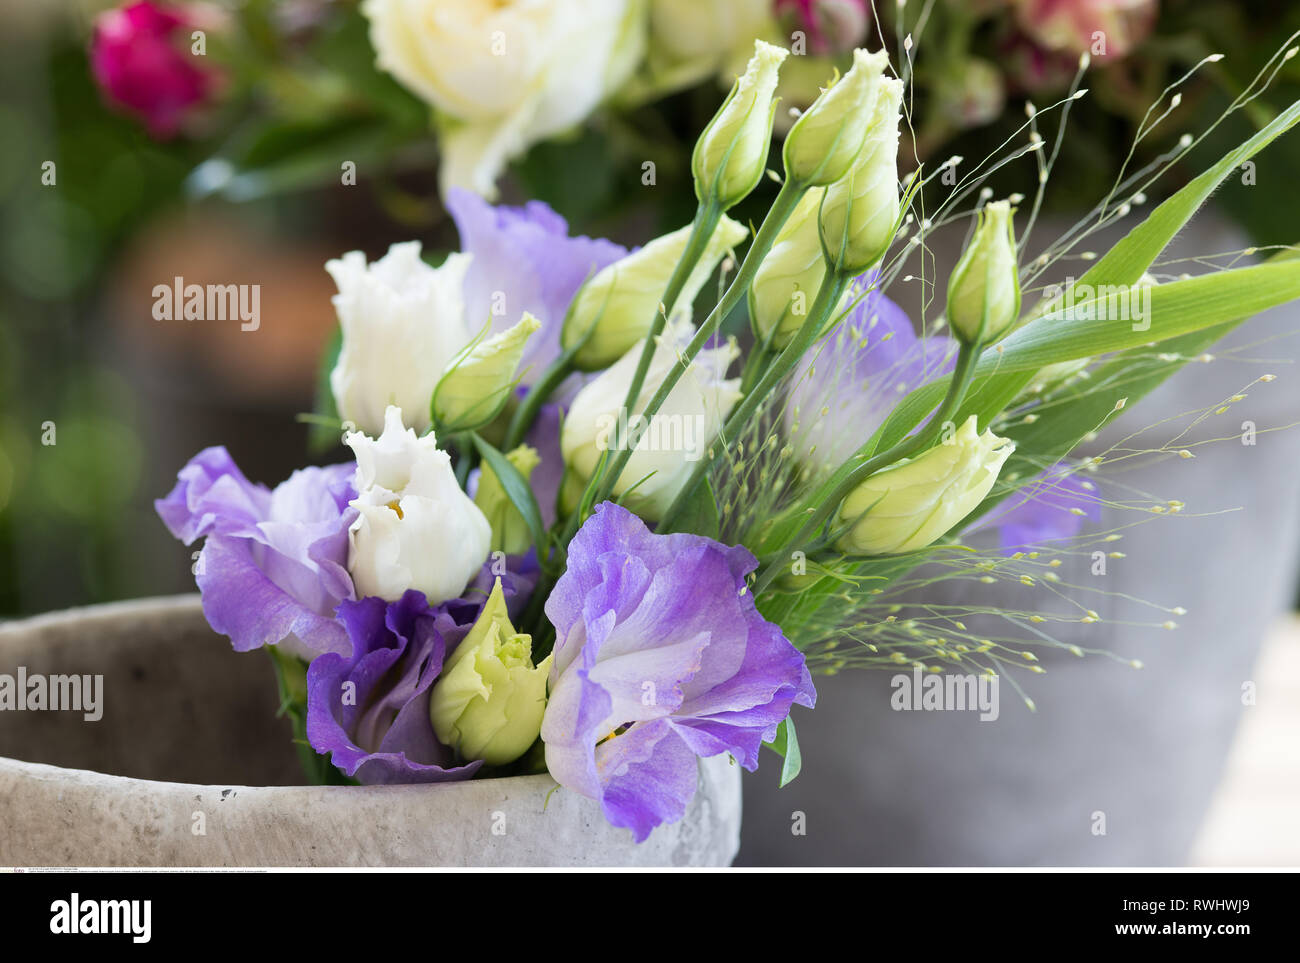 botany, Eustoma in a vessel, Caution! For Greetingcard-Use / Postcard-Use In German Speaking Countries Certain Restrictions May Apply - Stock Image